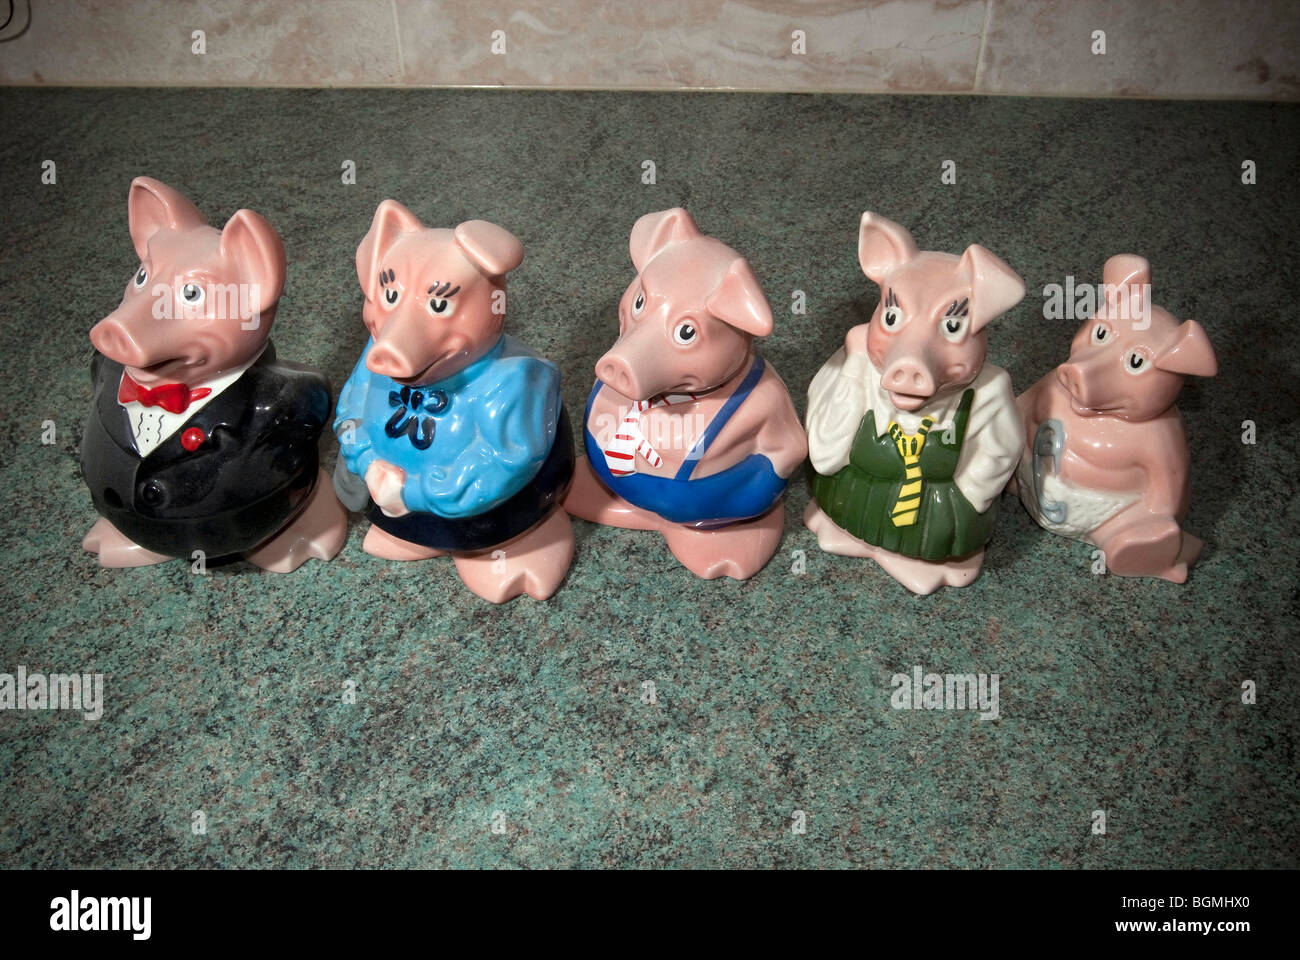 Wade porcelain Piggy bank family. Sir Nathaniel, Lady Hillary, Maxwell, Annabell and baby Woody. - Stock Image